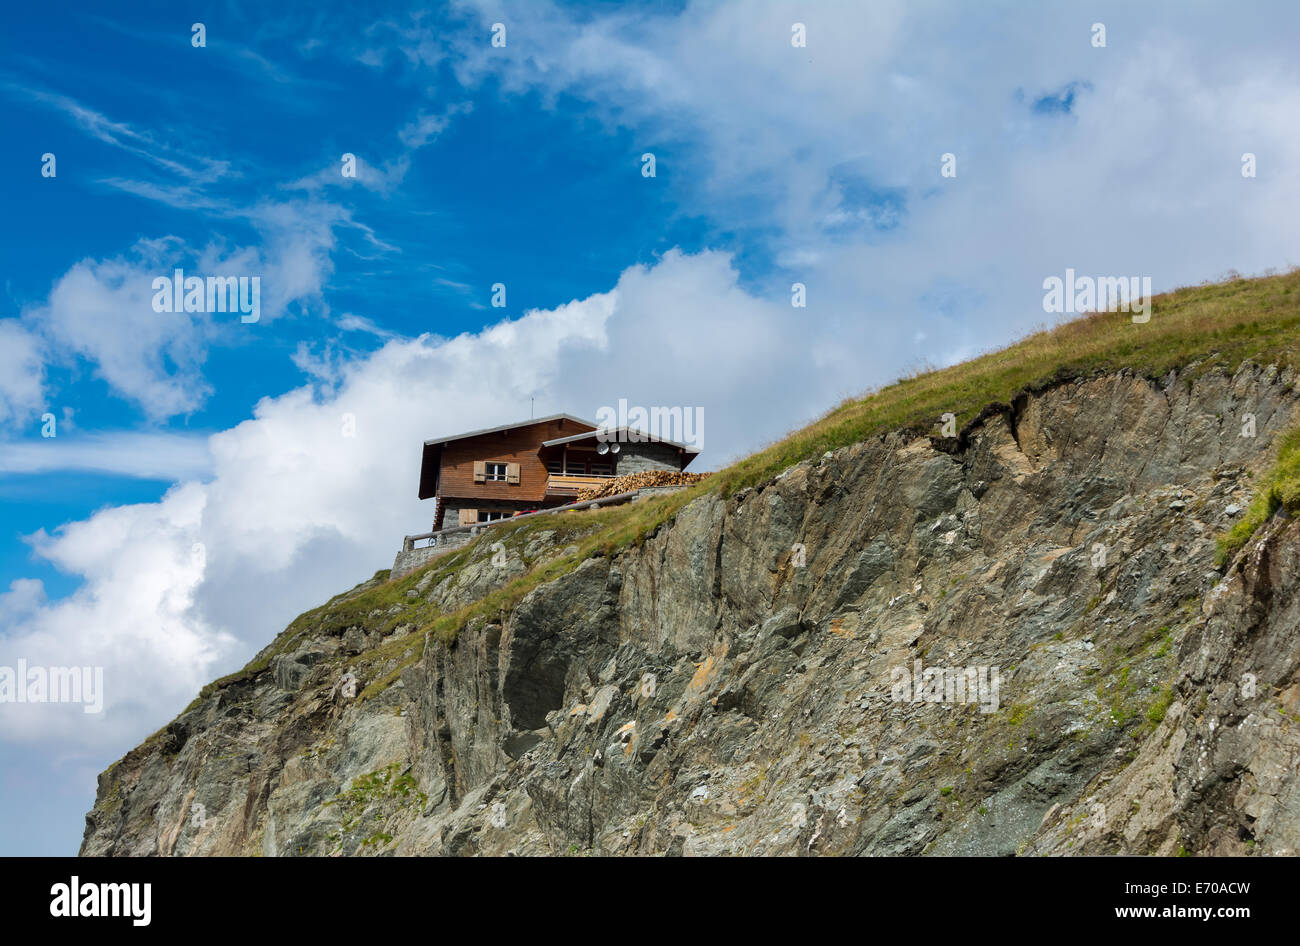 Wood chalet in Fagaras mountaines, Romania in the summer. - Stock Image